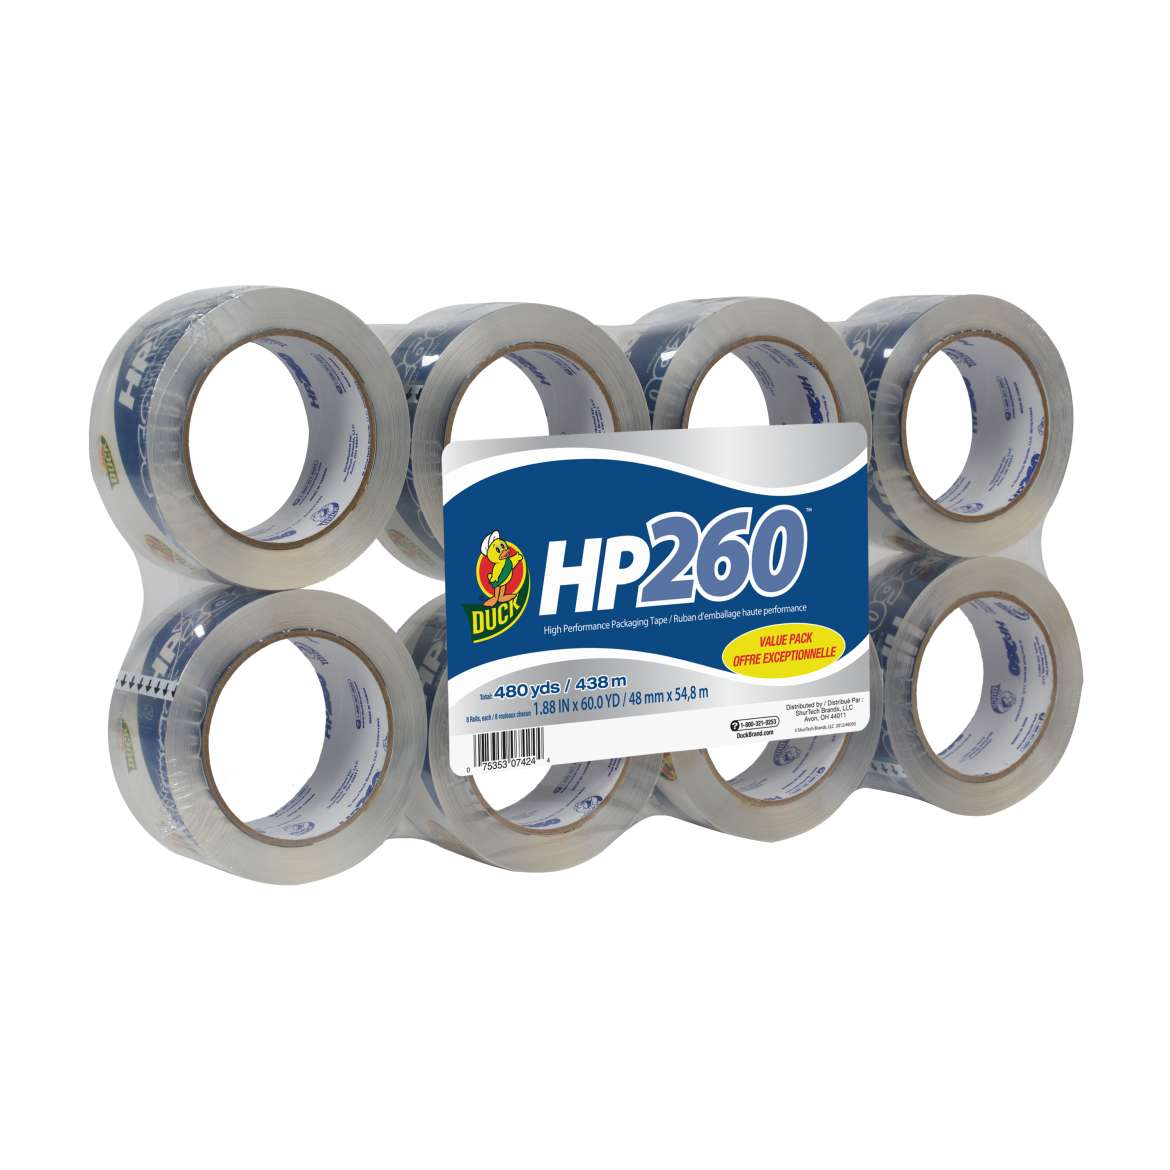 Duck® Brand HP260™ High Performance Packing Tape Image